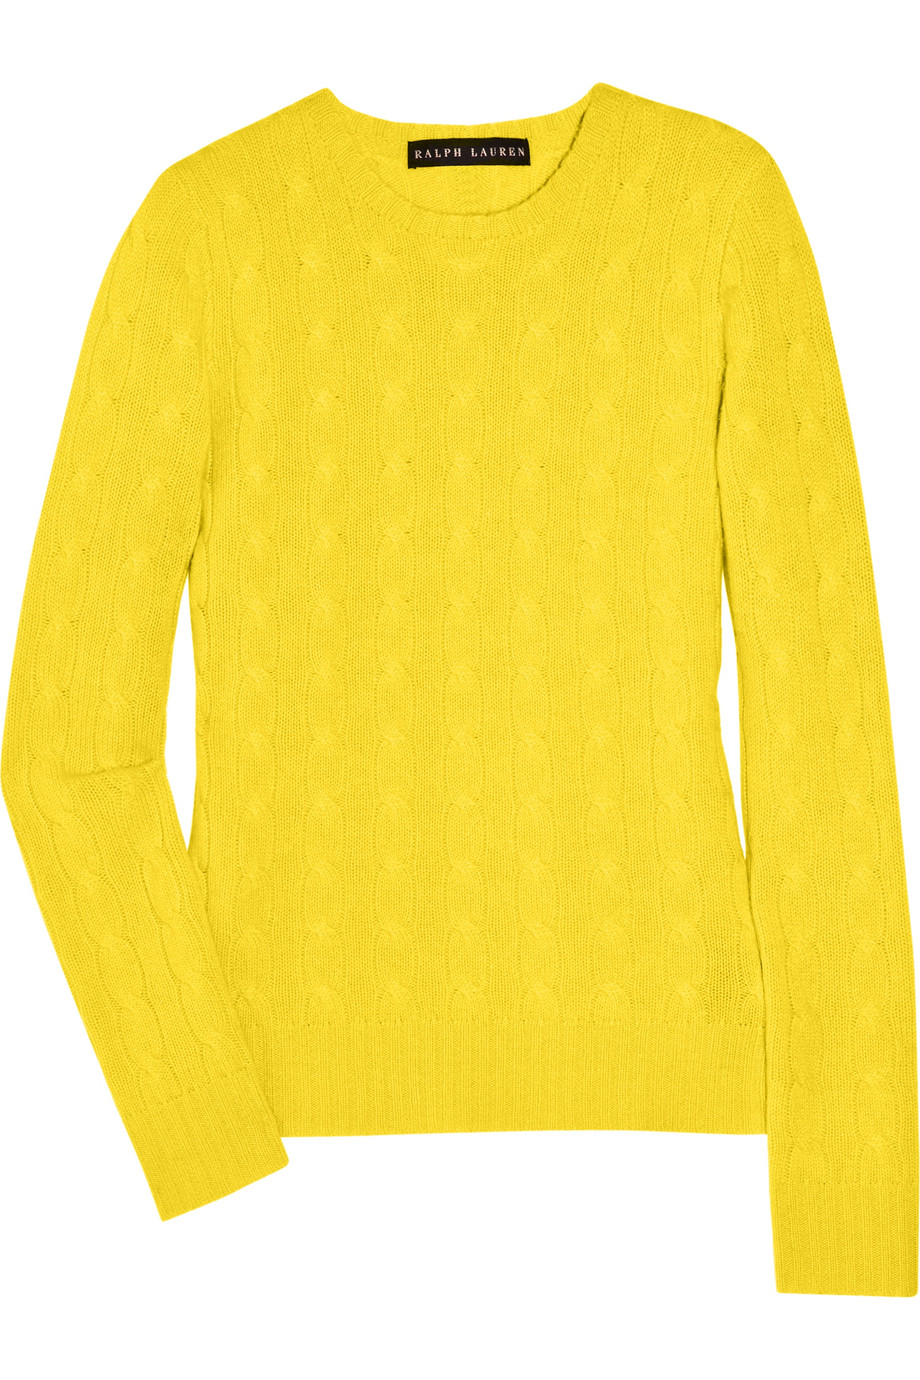 8873d7661 The Crewneck Cashmere sweaters –  400 – will only cost  160. In addition to  the sweaters